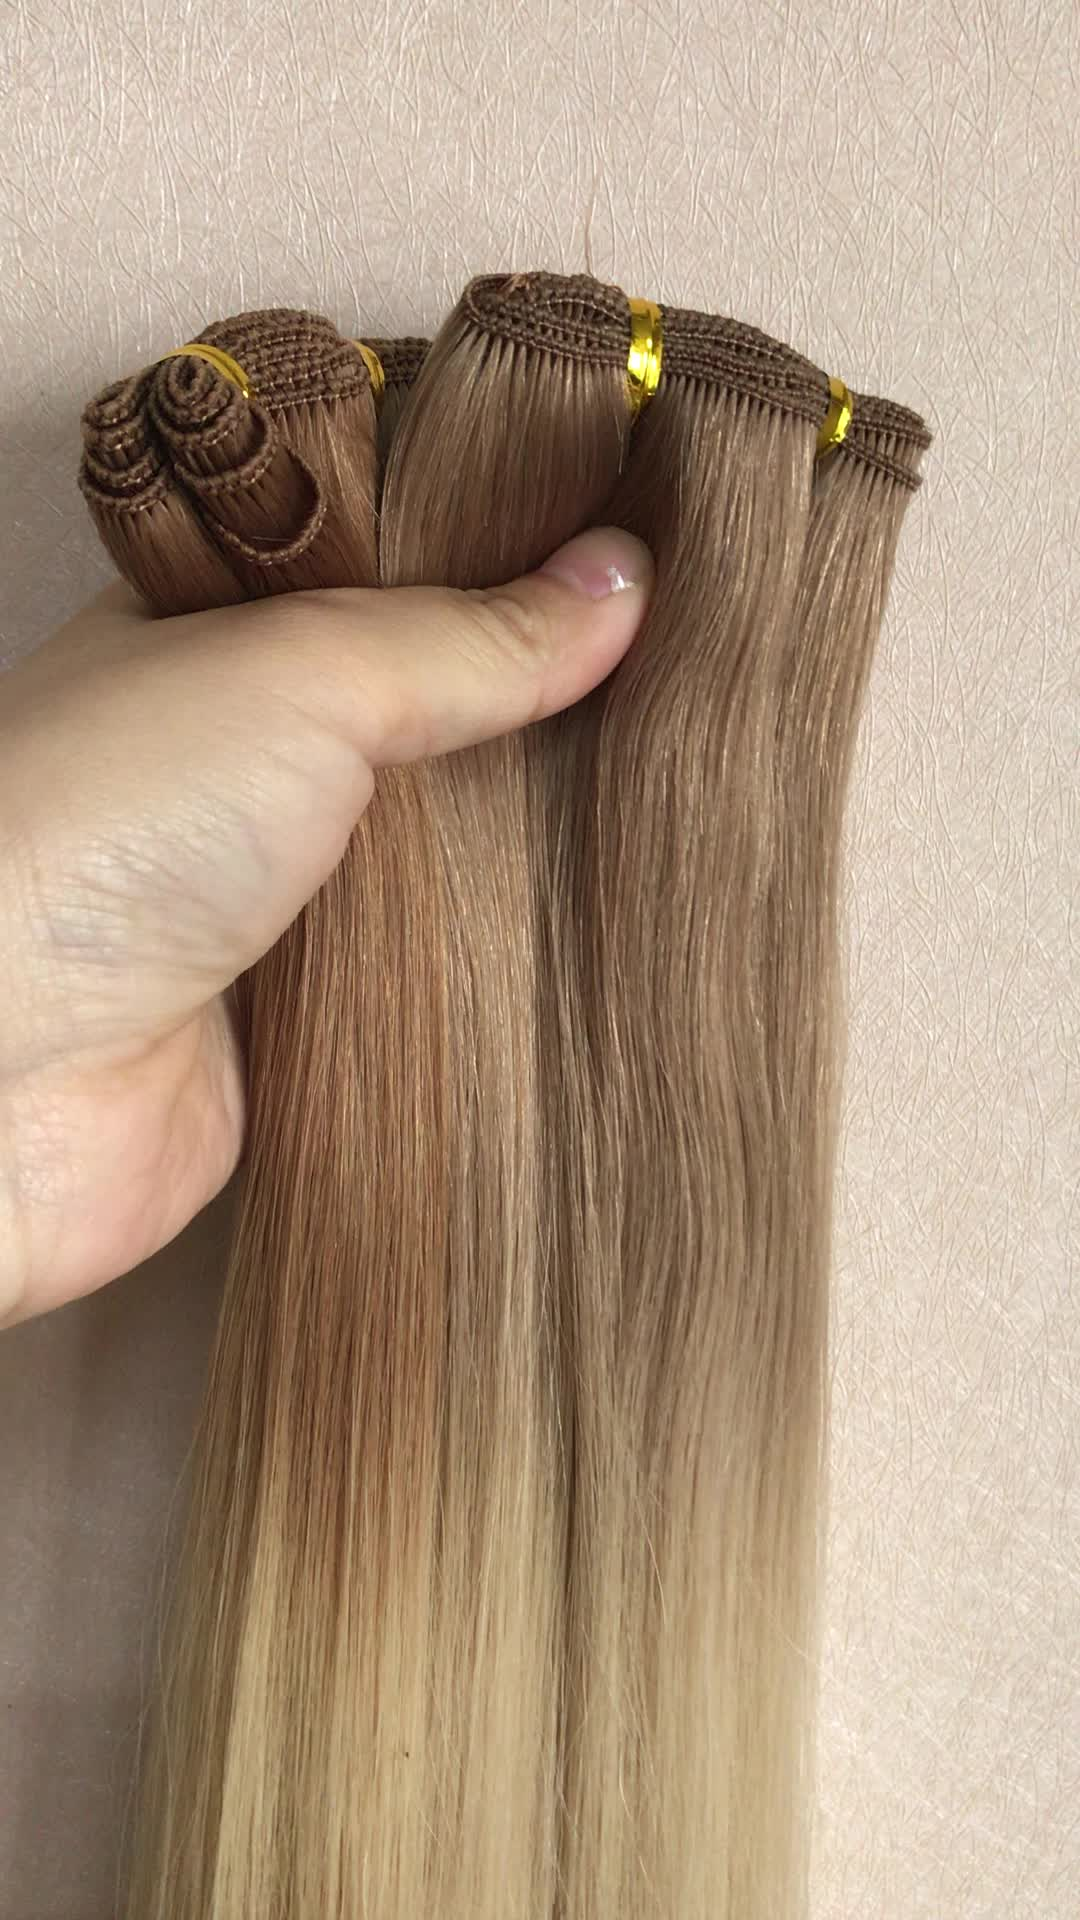 Greathairgroup Top Quality Hair Extension Hand Tied Skin Weft Silky Straight European Remy Human Hand Tied Hair Weft